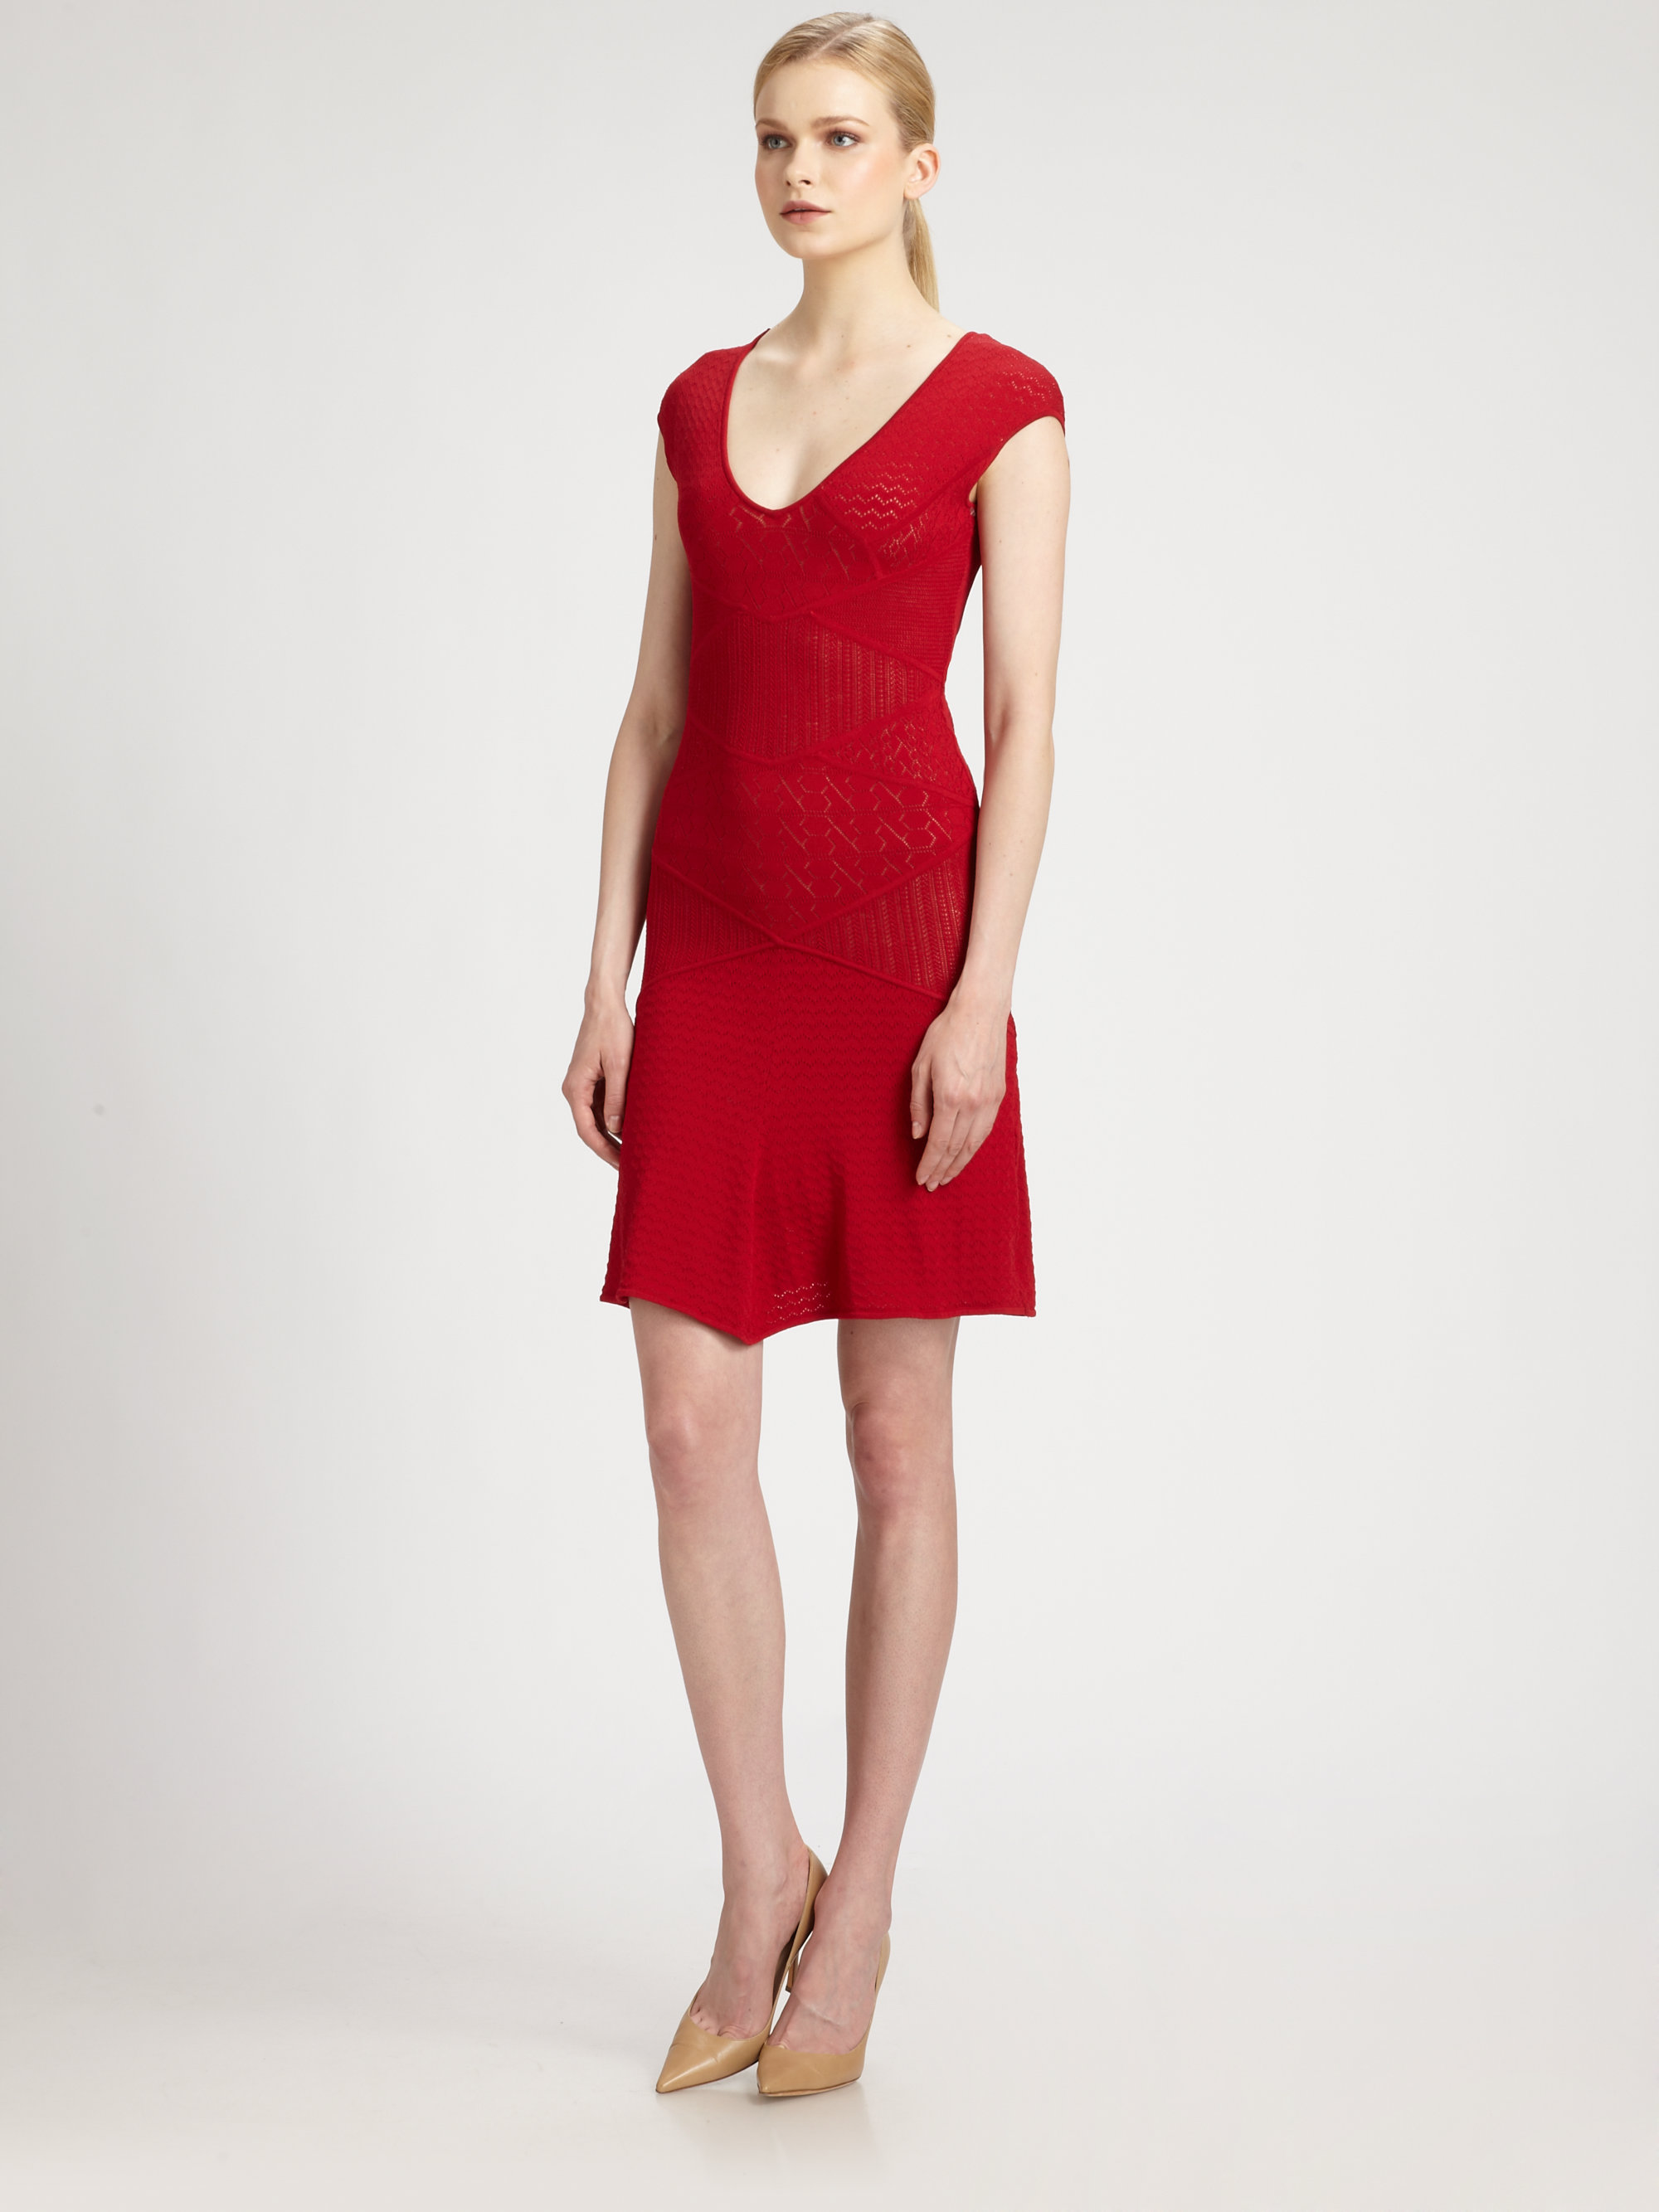 Catherine malandrino pointelle dress in red lyst gallery ombrellifo Choice Image